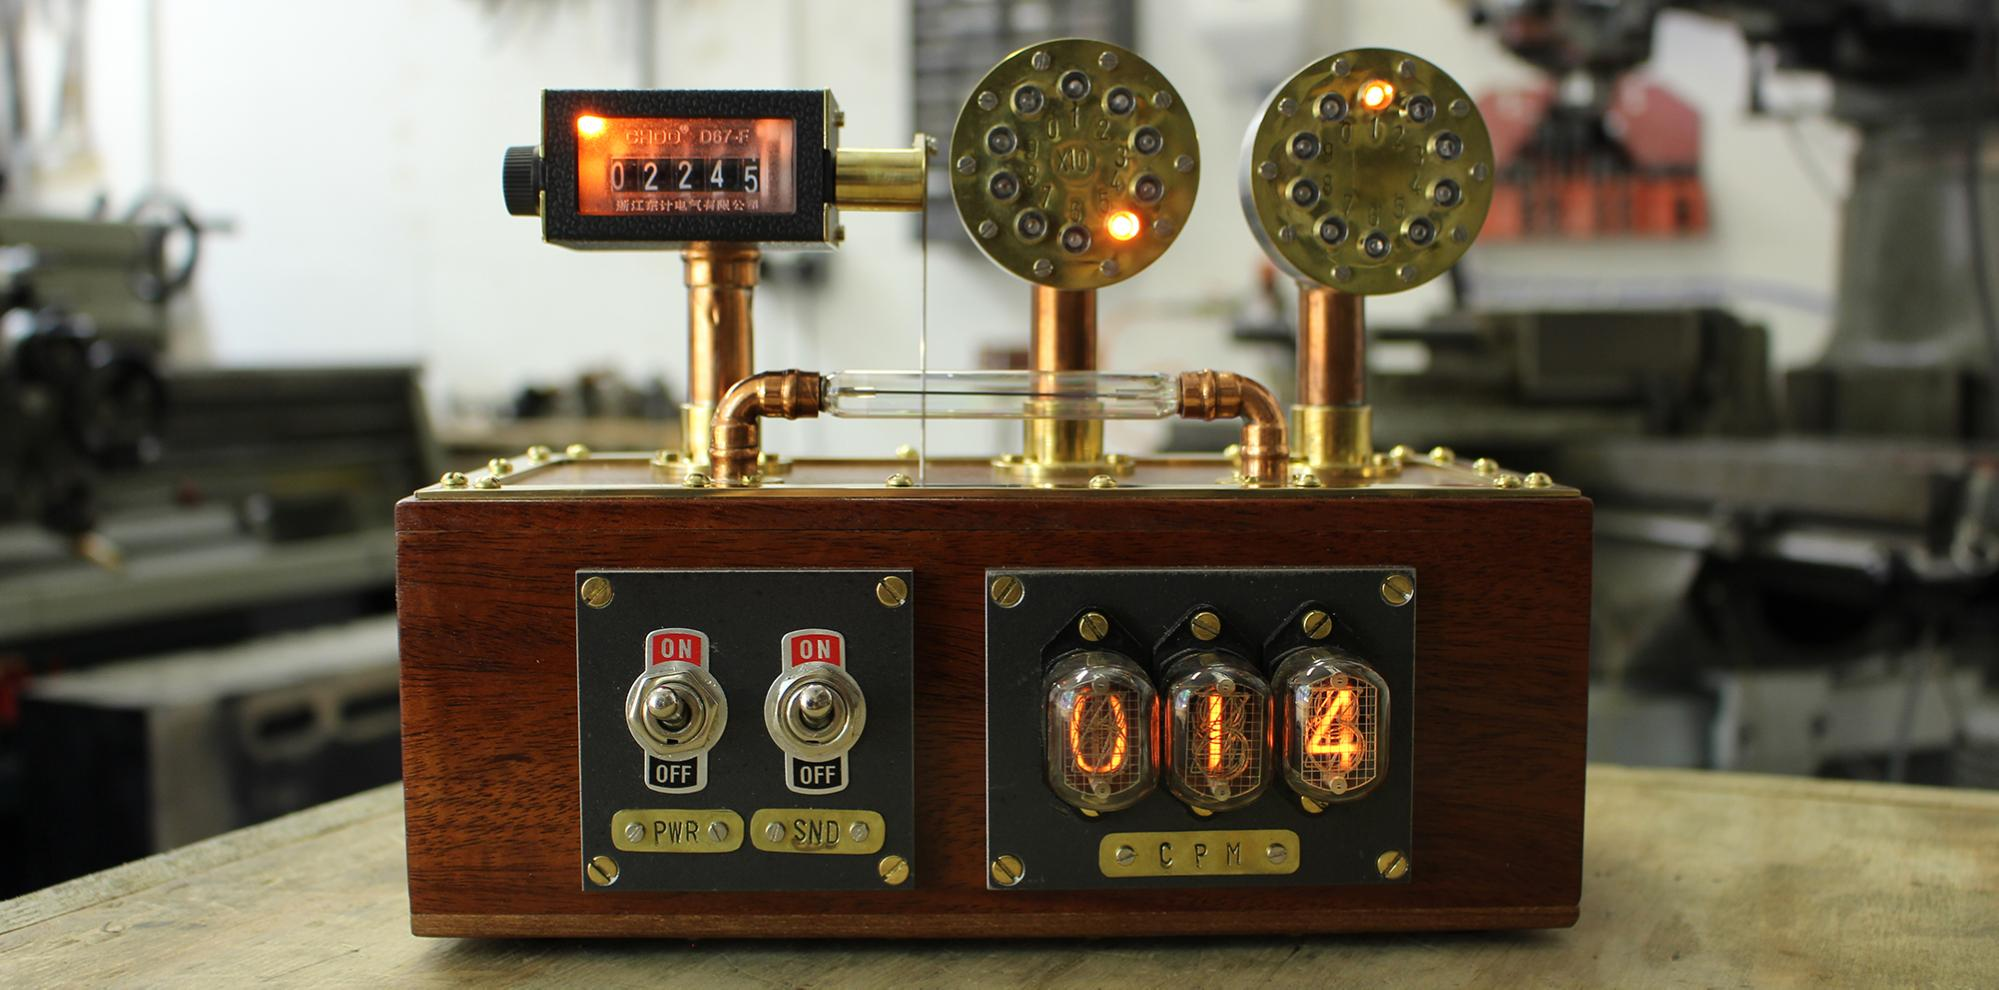 Steampunk-inspired Geiger counter